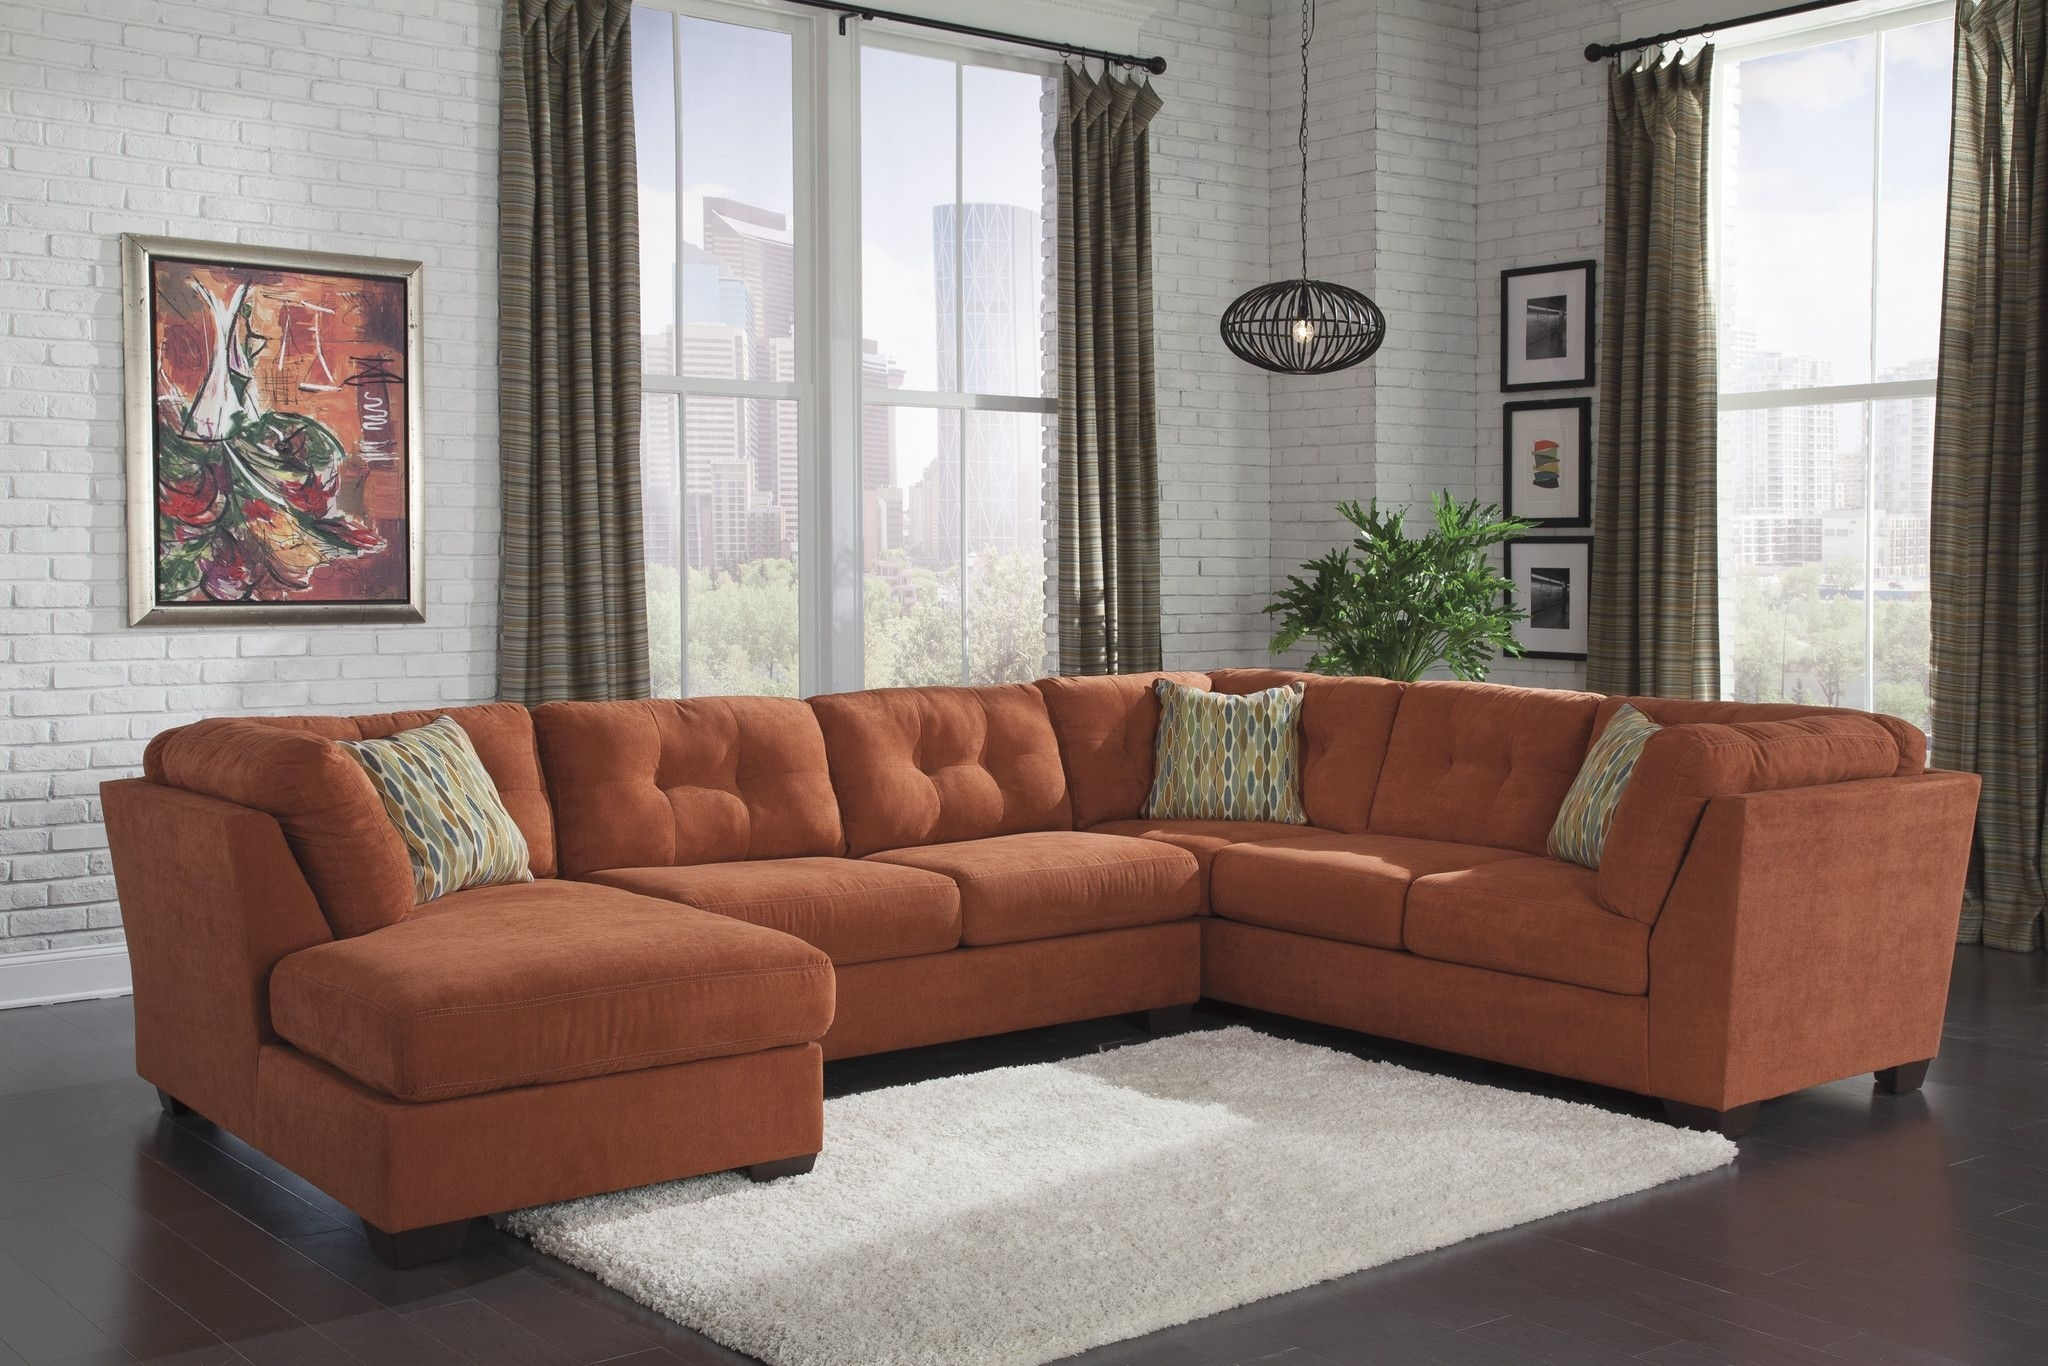 Ashley Furniture Delta City Orange Sectional Left 1970116+34+38 Regarding Turdur 3 Piece Sectionals With Raf Loveseat (Image 3 of 25)